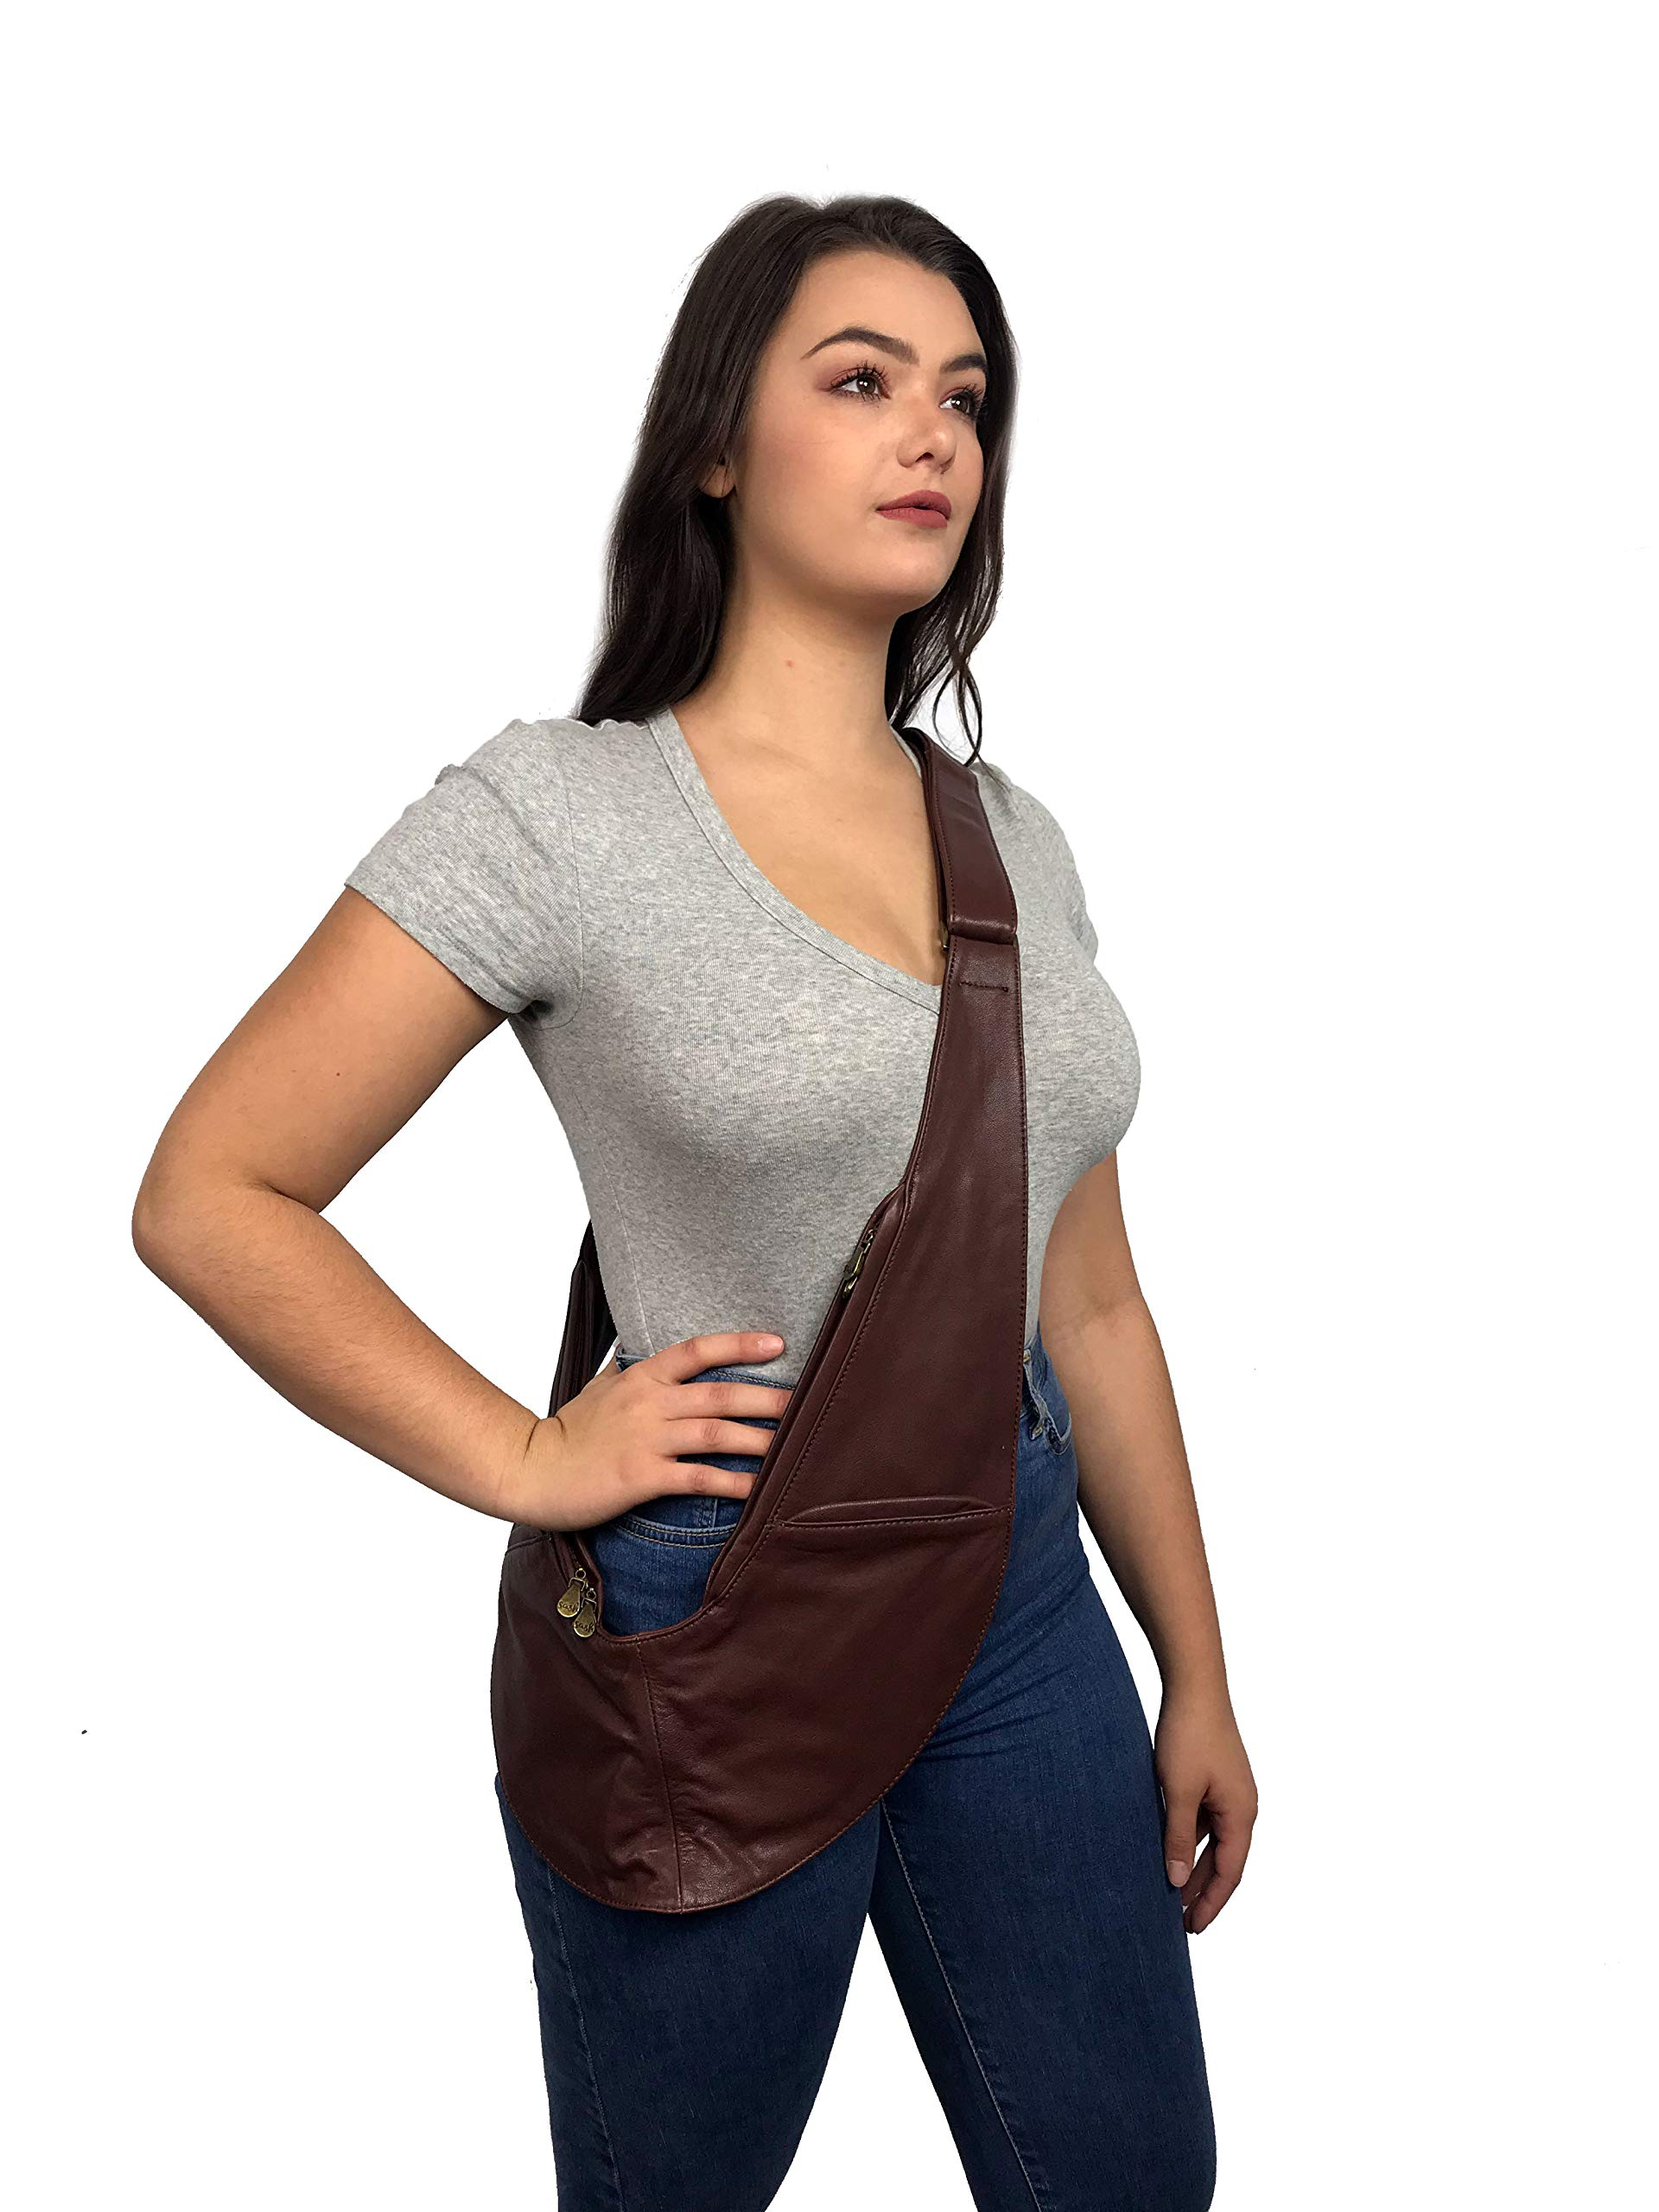 Womens Crossbody Bag by SASH - Over The Shoulder Cross Body Purse with Spacious Organized Storage, Anti Theft RFID and Adjustable Strap (Brown Genuine Leather)